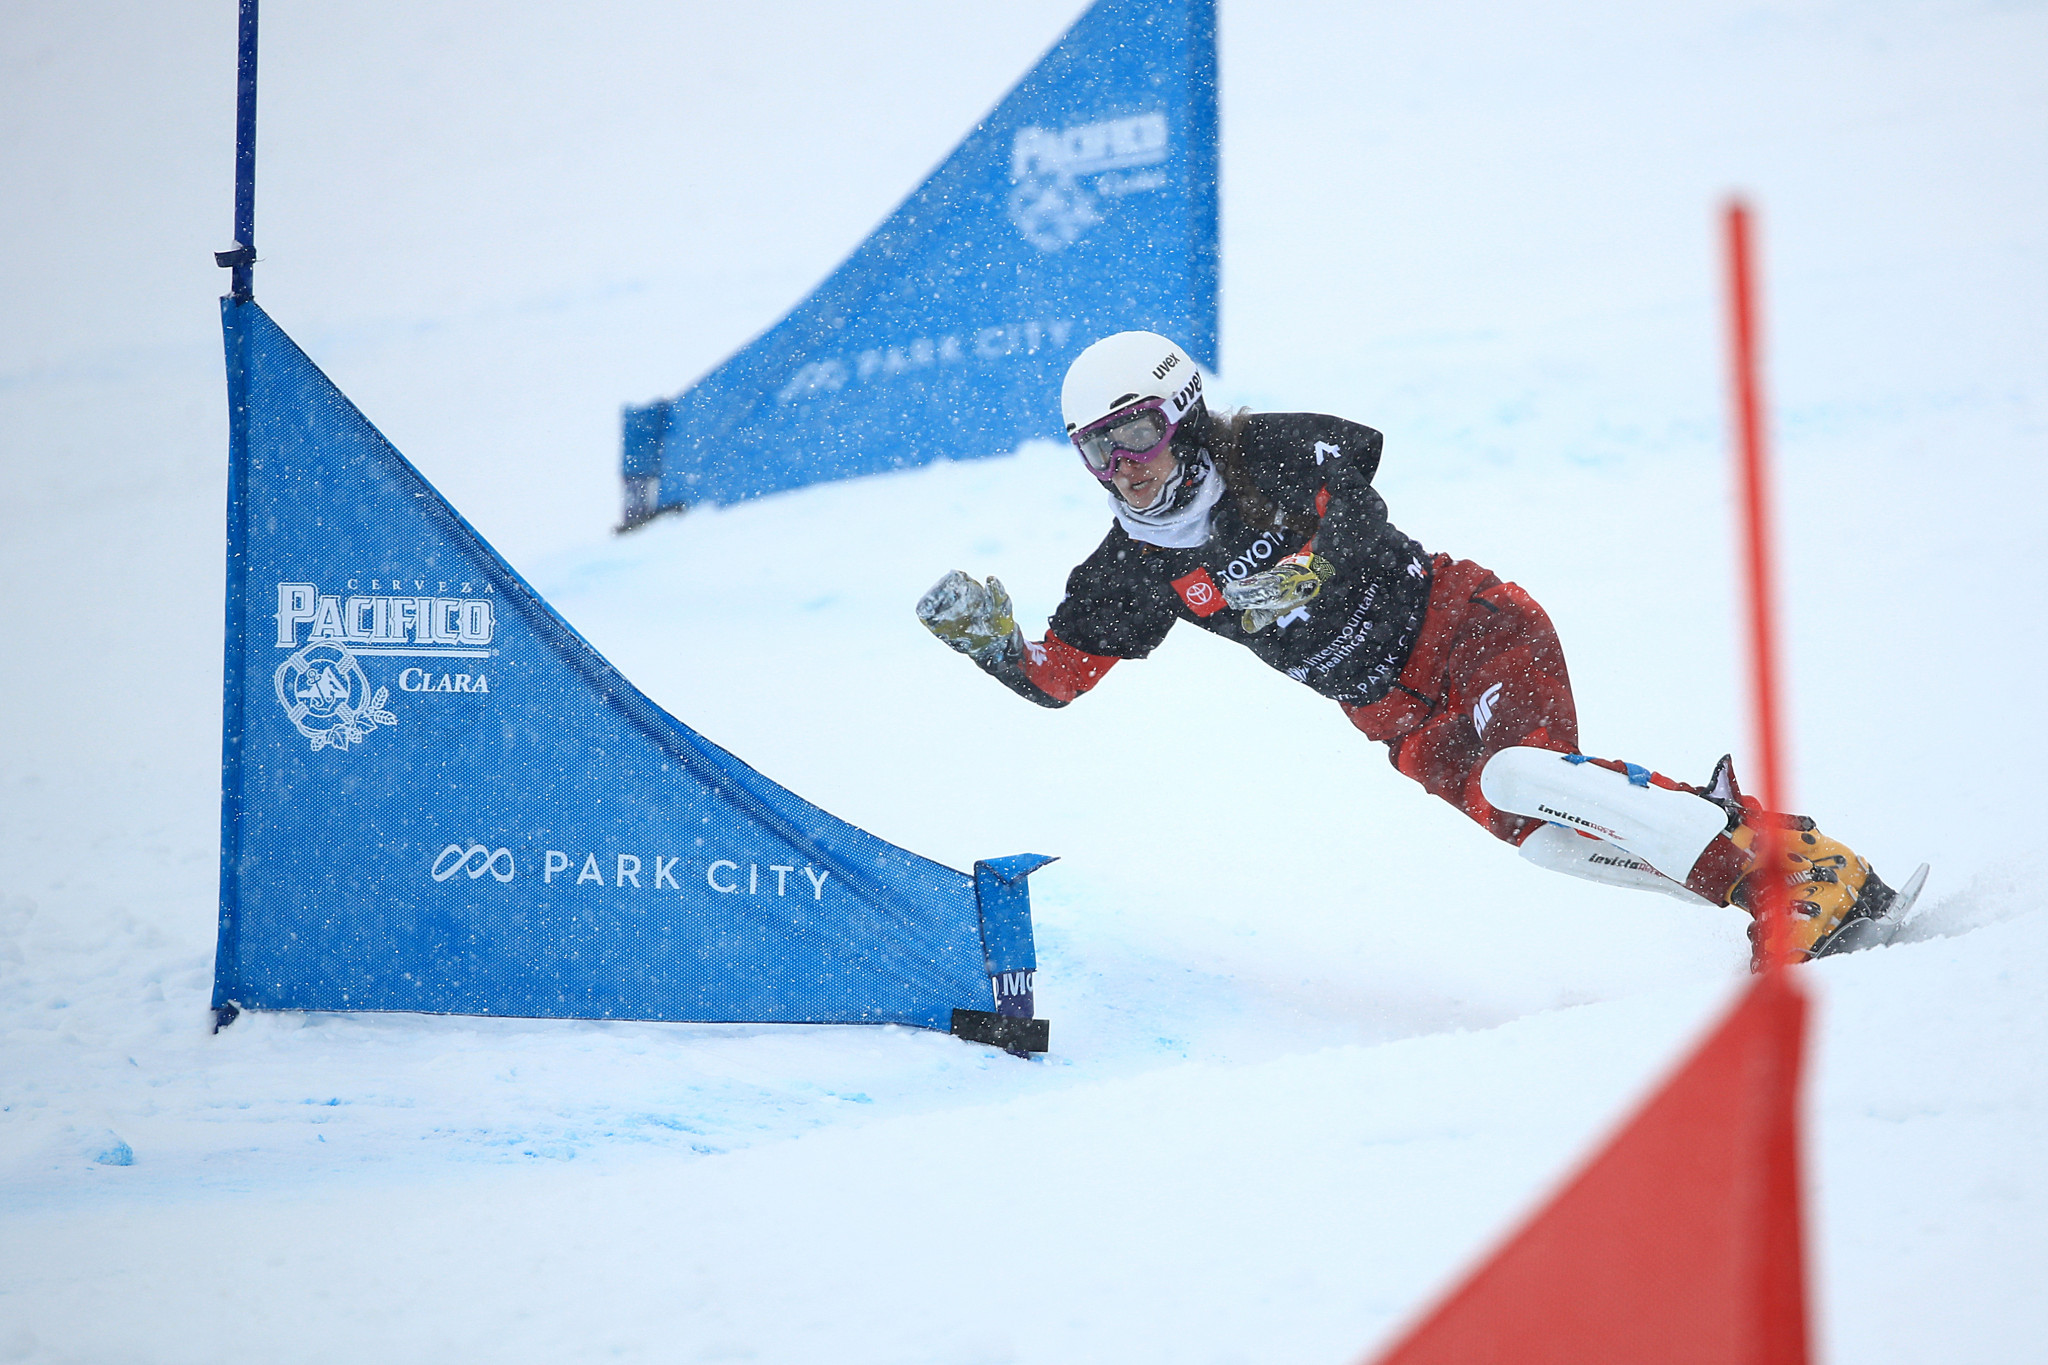 Julie Zogg of Switzerland won the women's parallel slalom event ©Getty Images